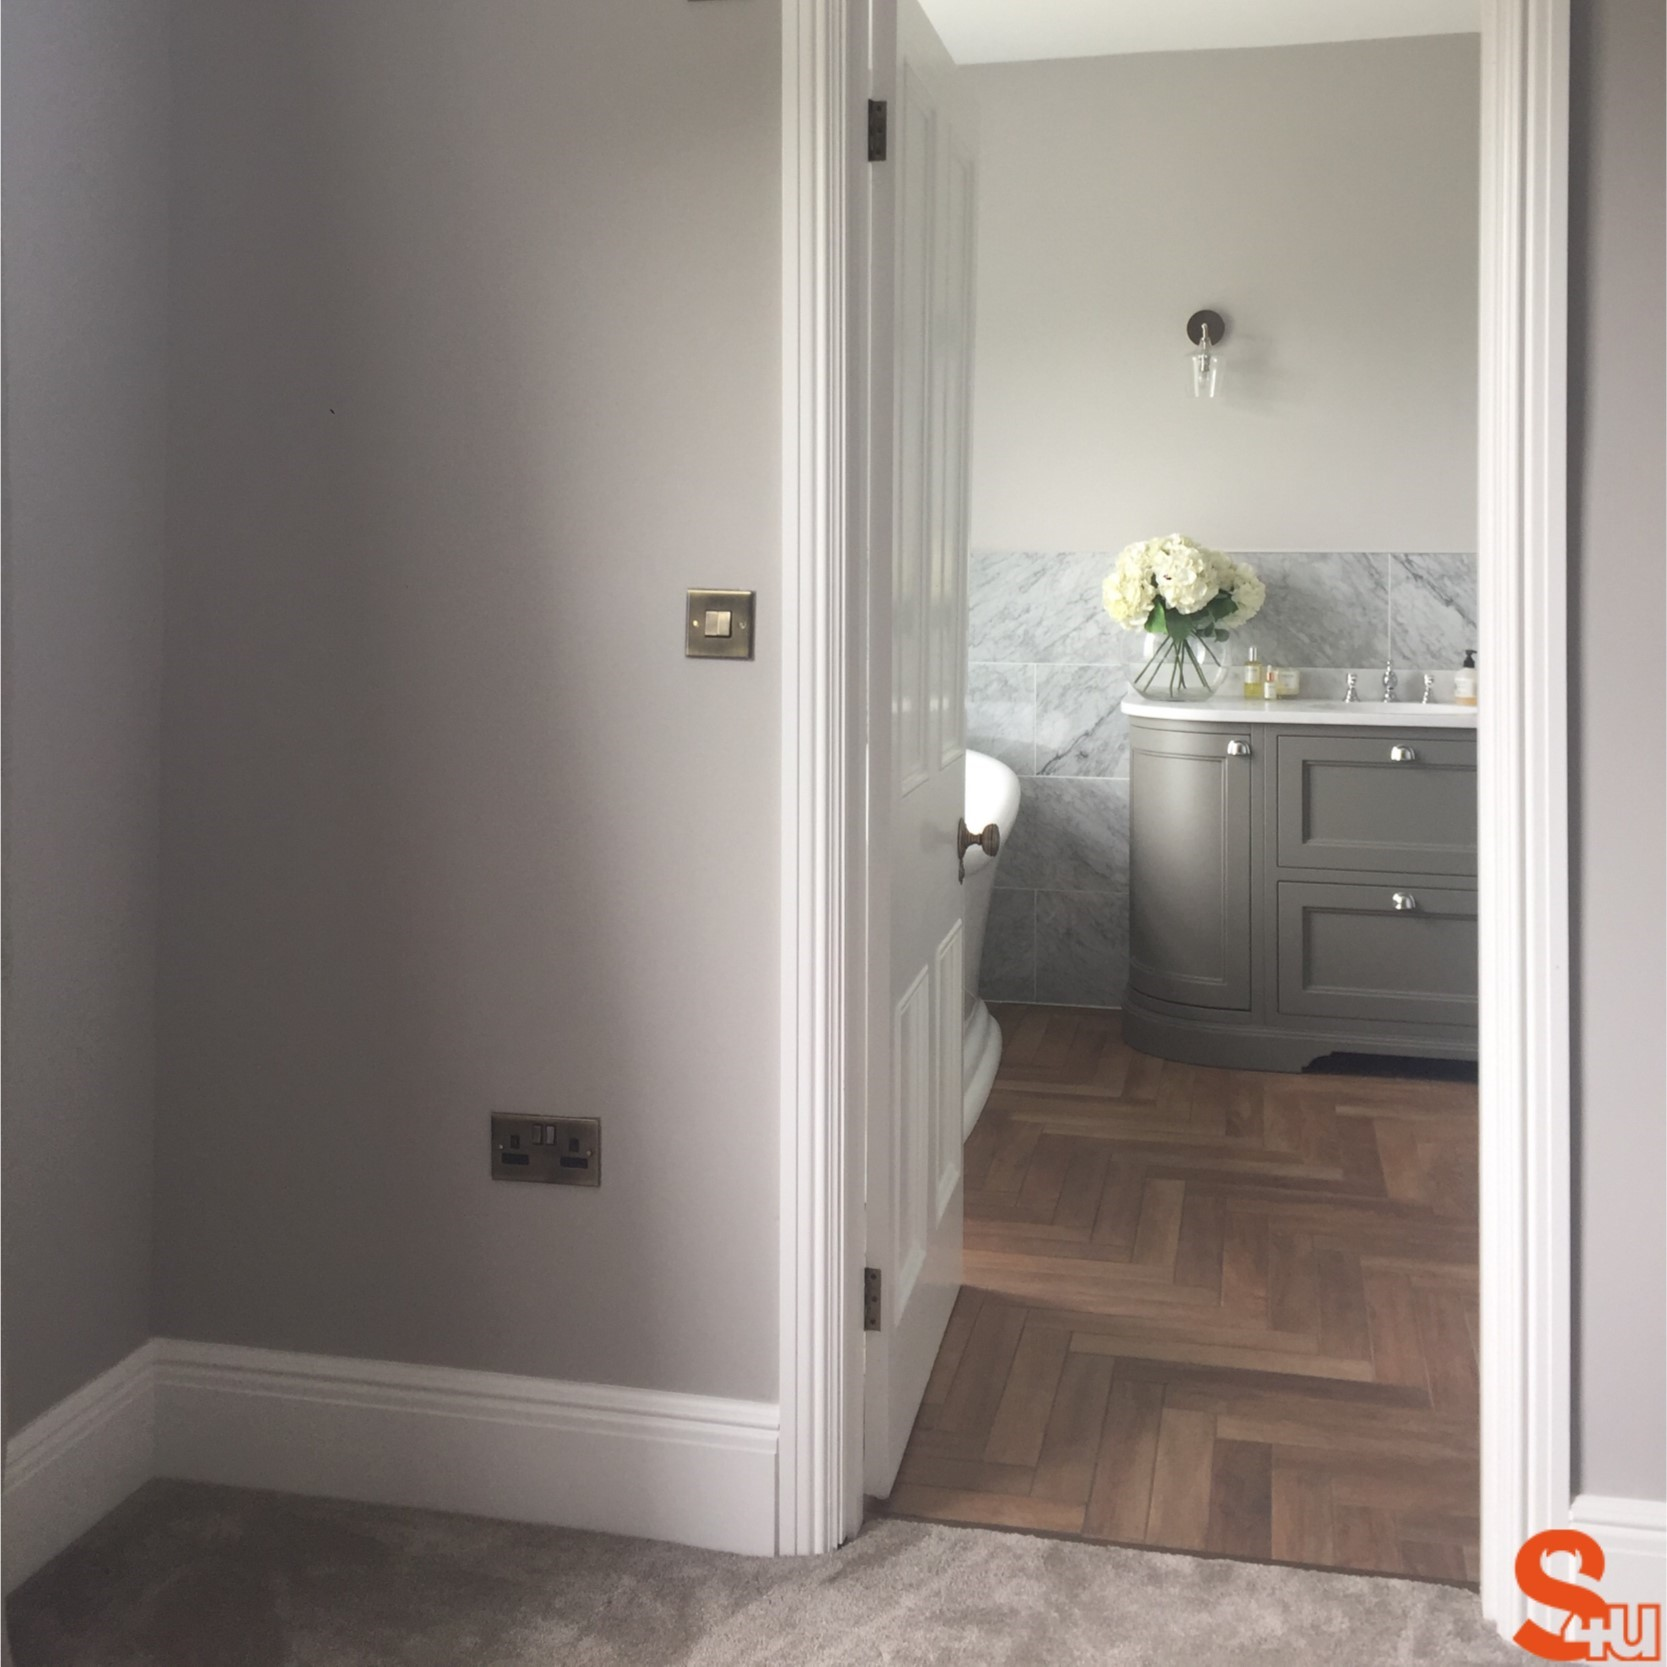 Georgian architrave and skirting boards